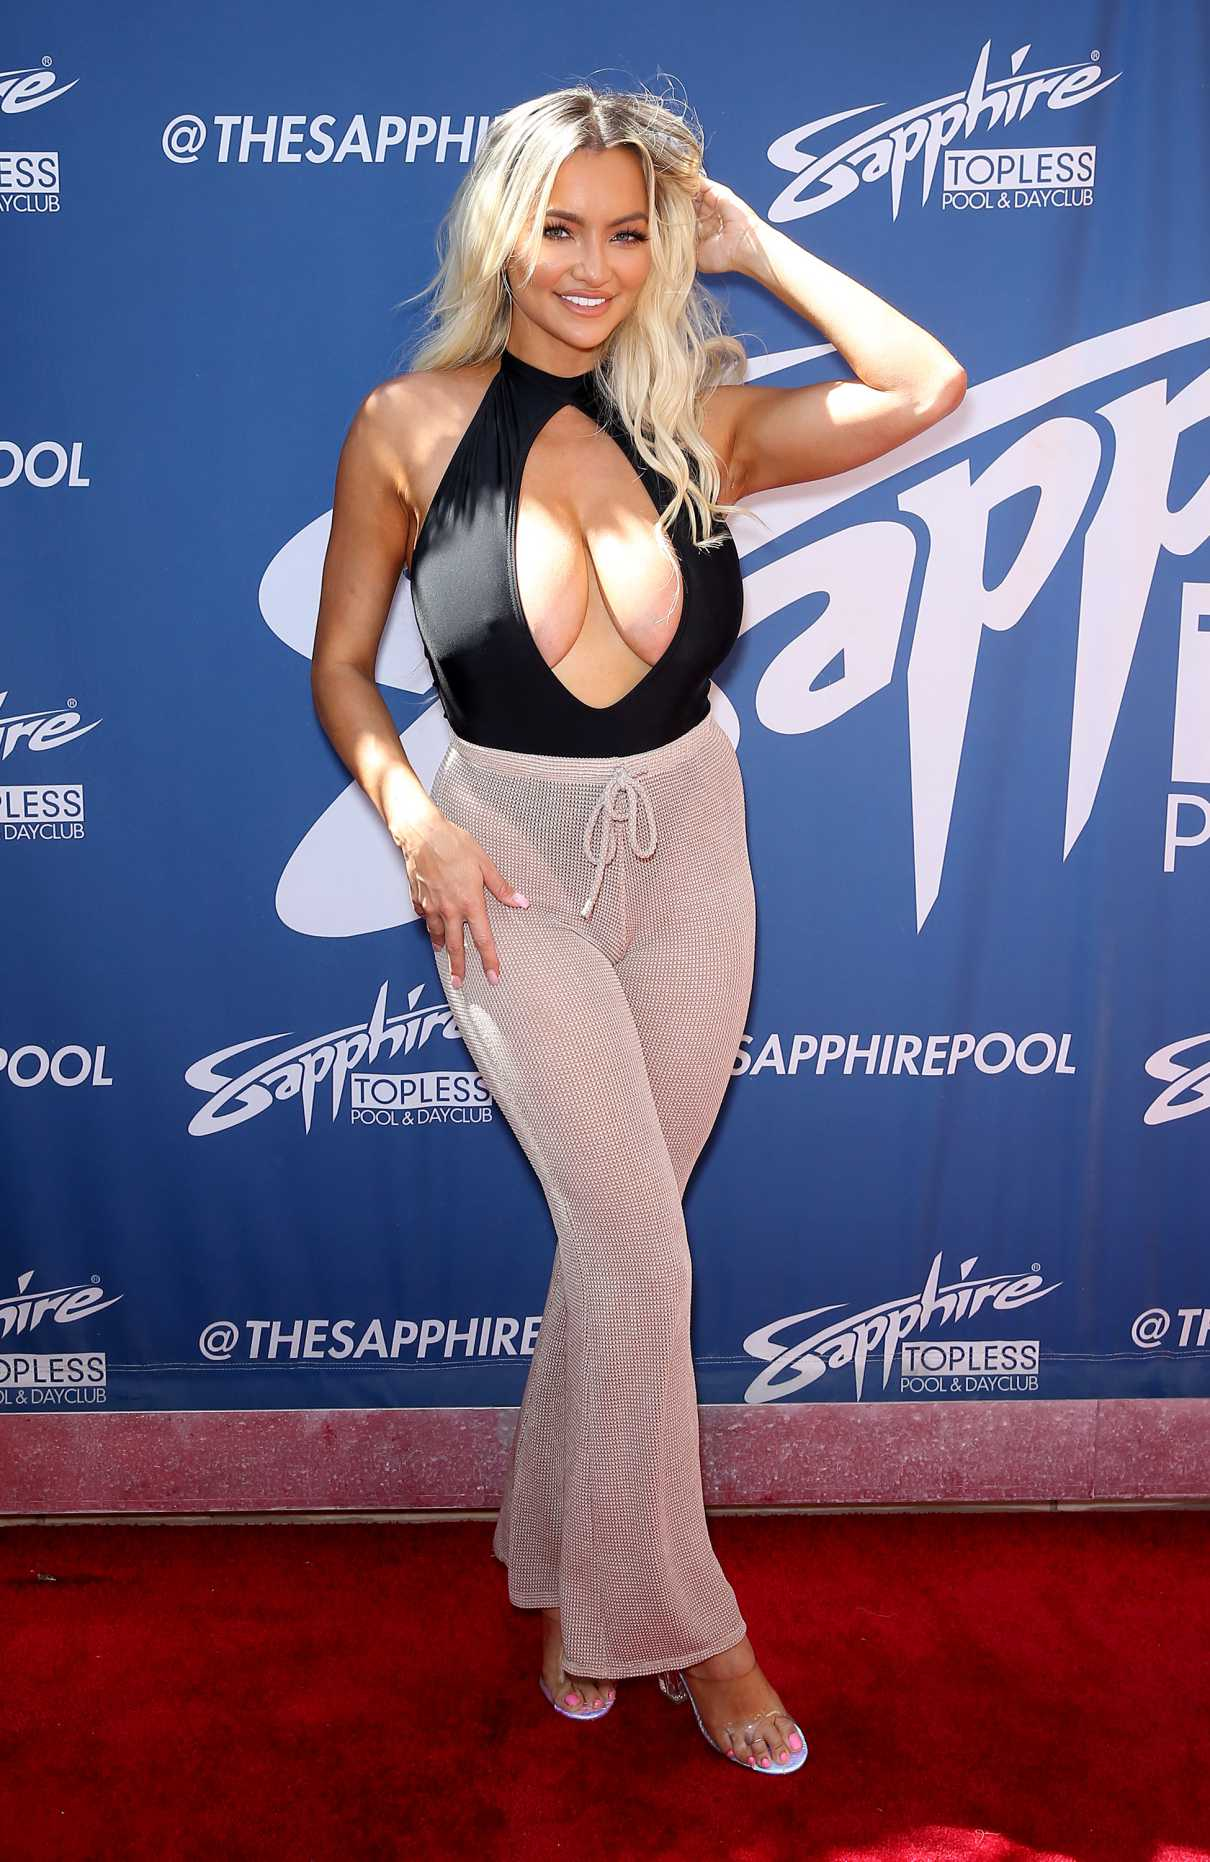 Lindsey Pelas Attends Sapphire Topless Pool and Day Club